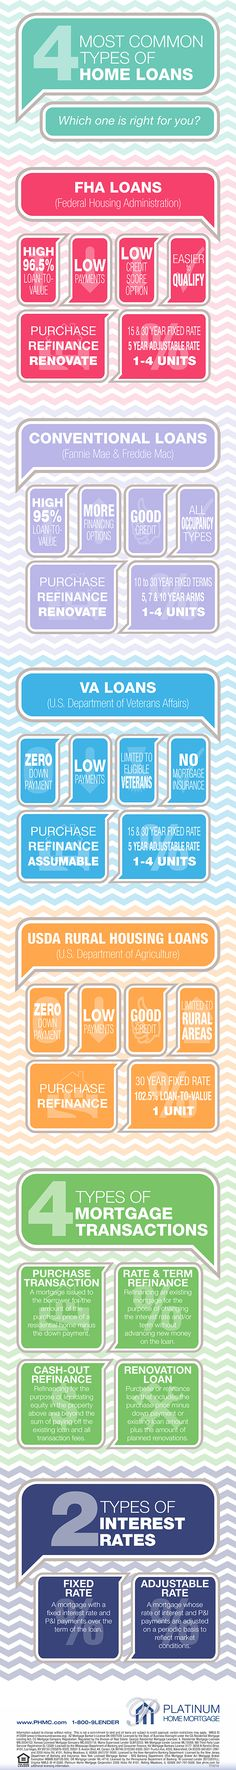 Types of Home Loans infographic - FHA, Conventional, VA, USDA, purchase, refinance, fixed rate, and adjustable rate